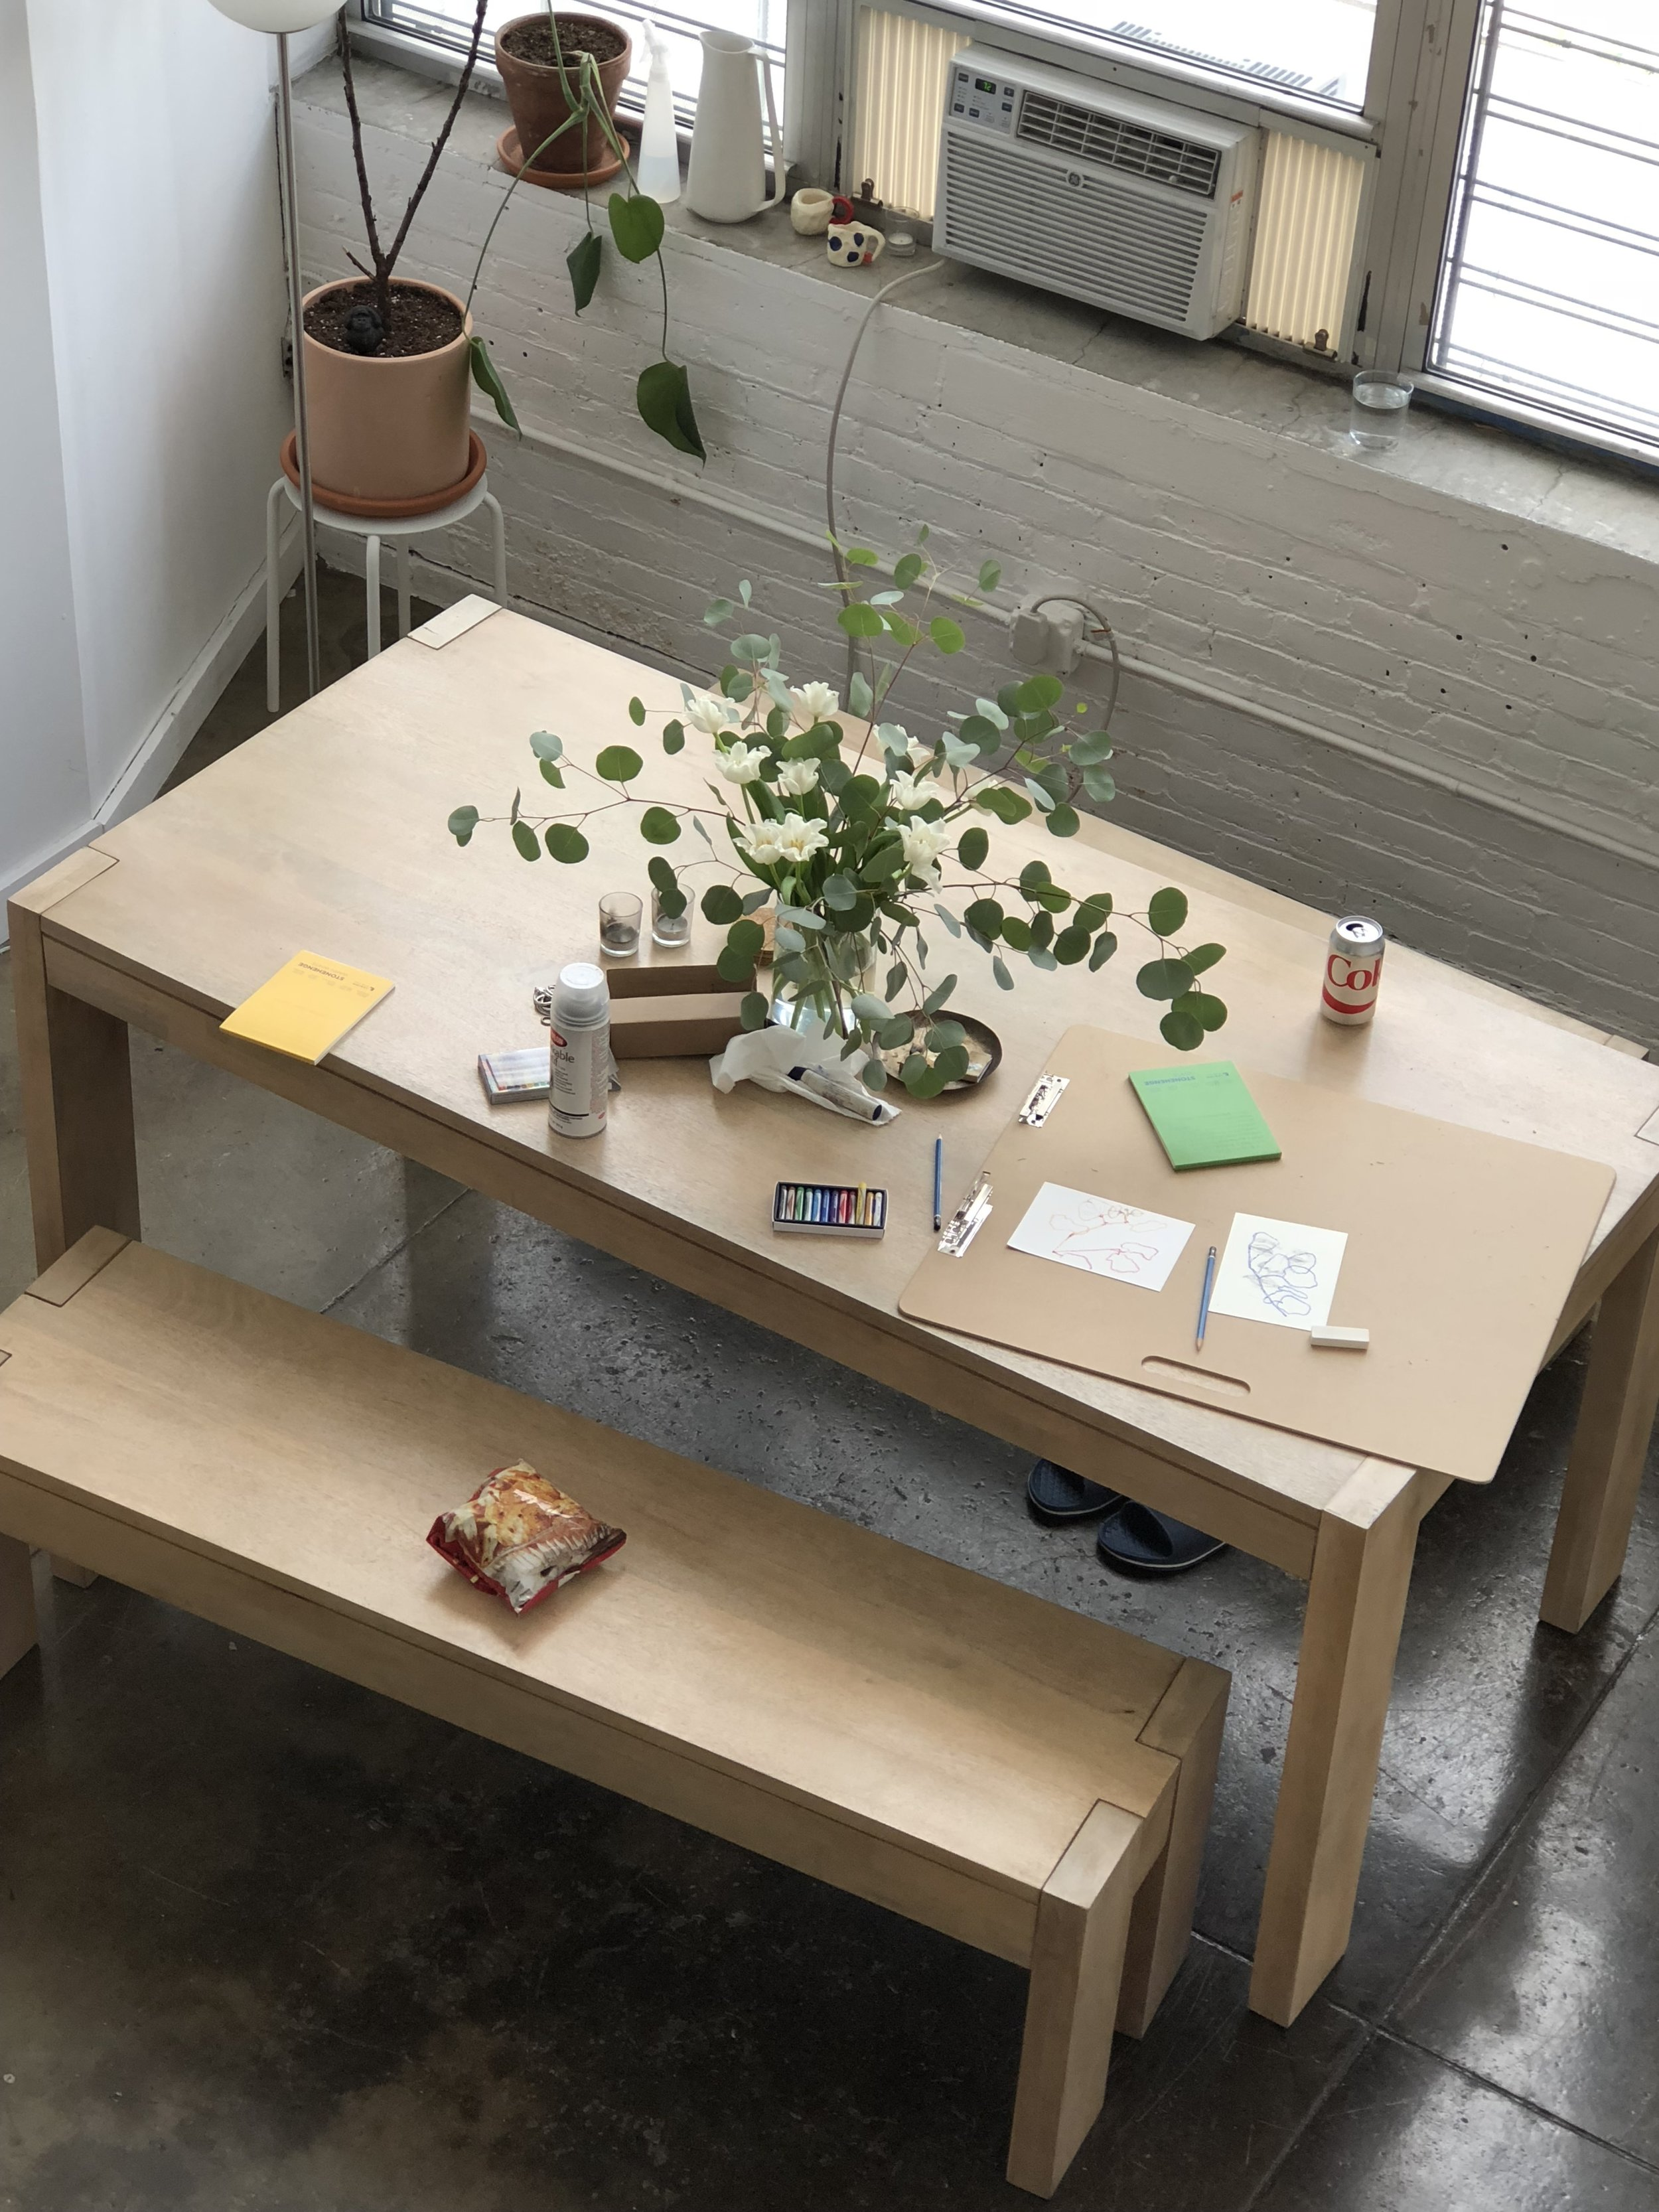 HELLO - Andrea Nhu-Phuong Nguyen (b.1988) works from this table in her home in Brooklyn, New York.contact / collaboration / conversations:andreapnguyen@gmail.com